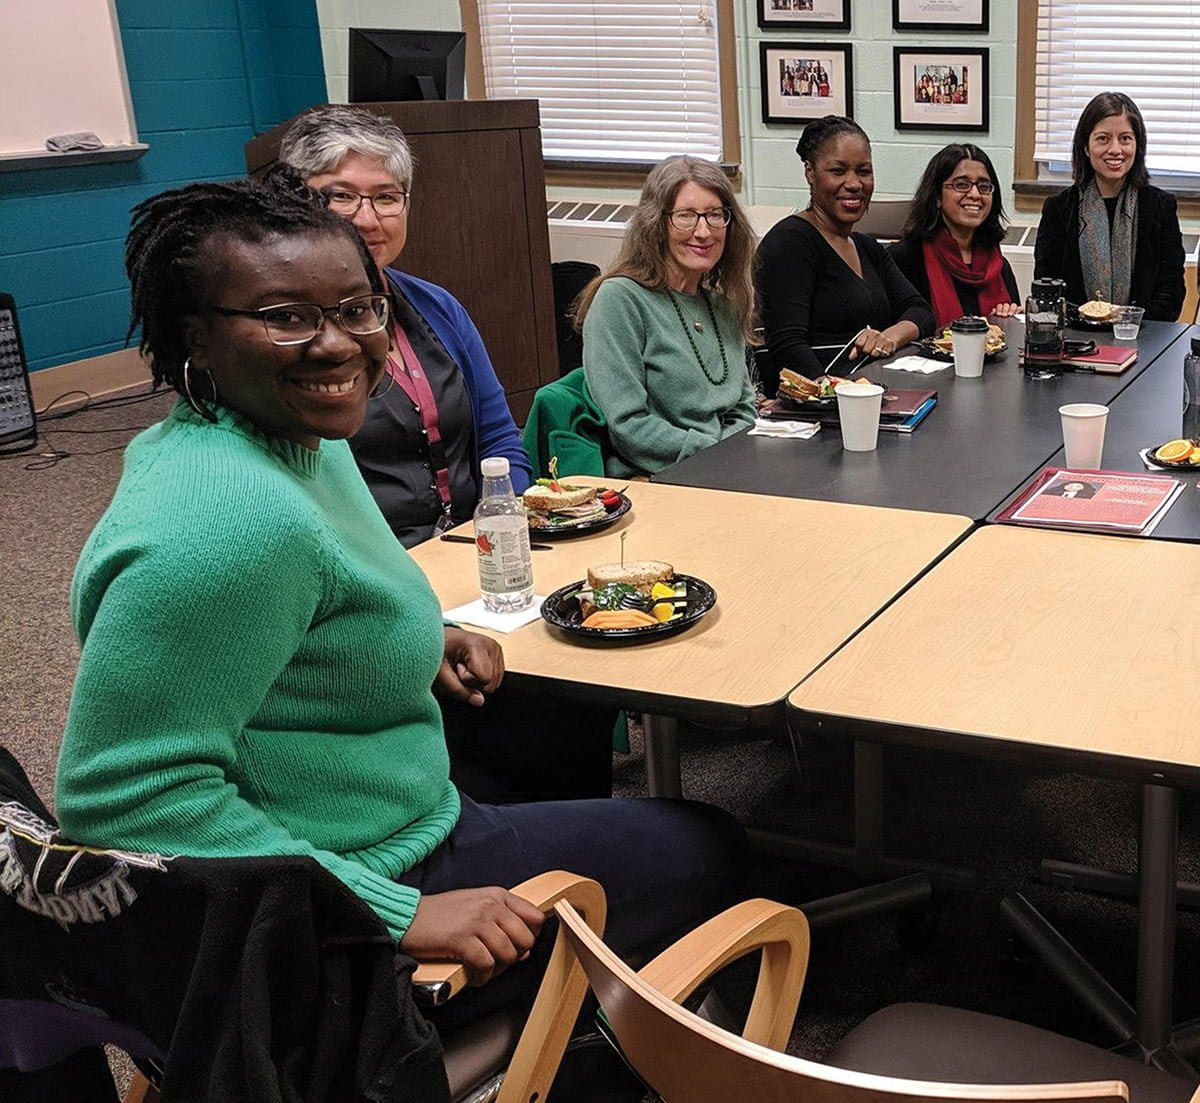 Students, faculty and staff pose during the community lunch with the founder and CEO of Pipeline Angels, Natalia Oberti Noguera. Pipeline Angels holds summits for angel investors and women and non-binary femme social entrepreneurs.// Photo courtesy Natalia Oberti Noguera